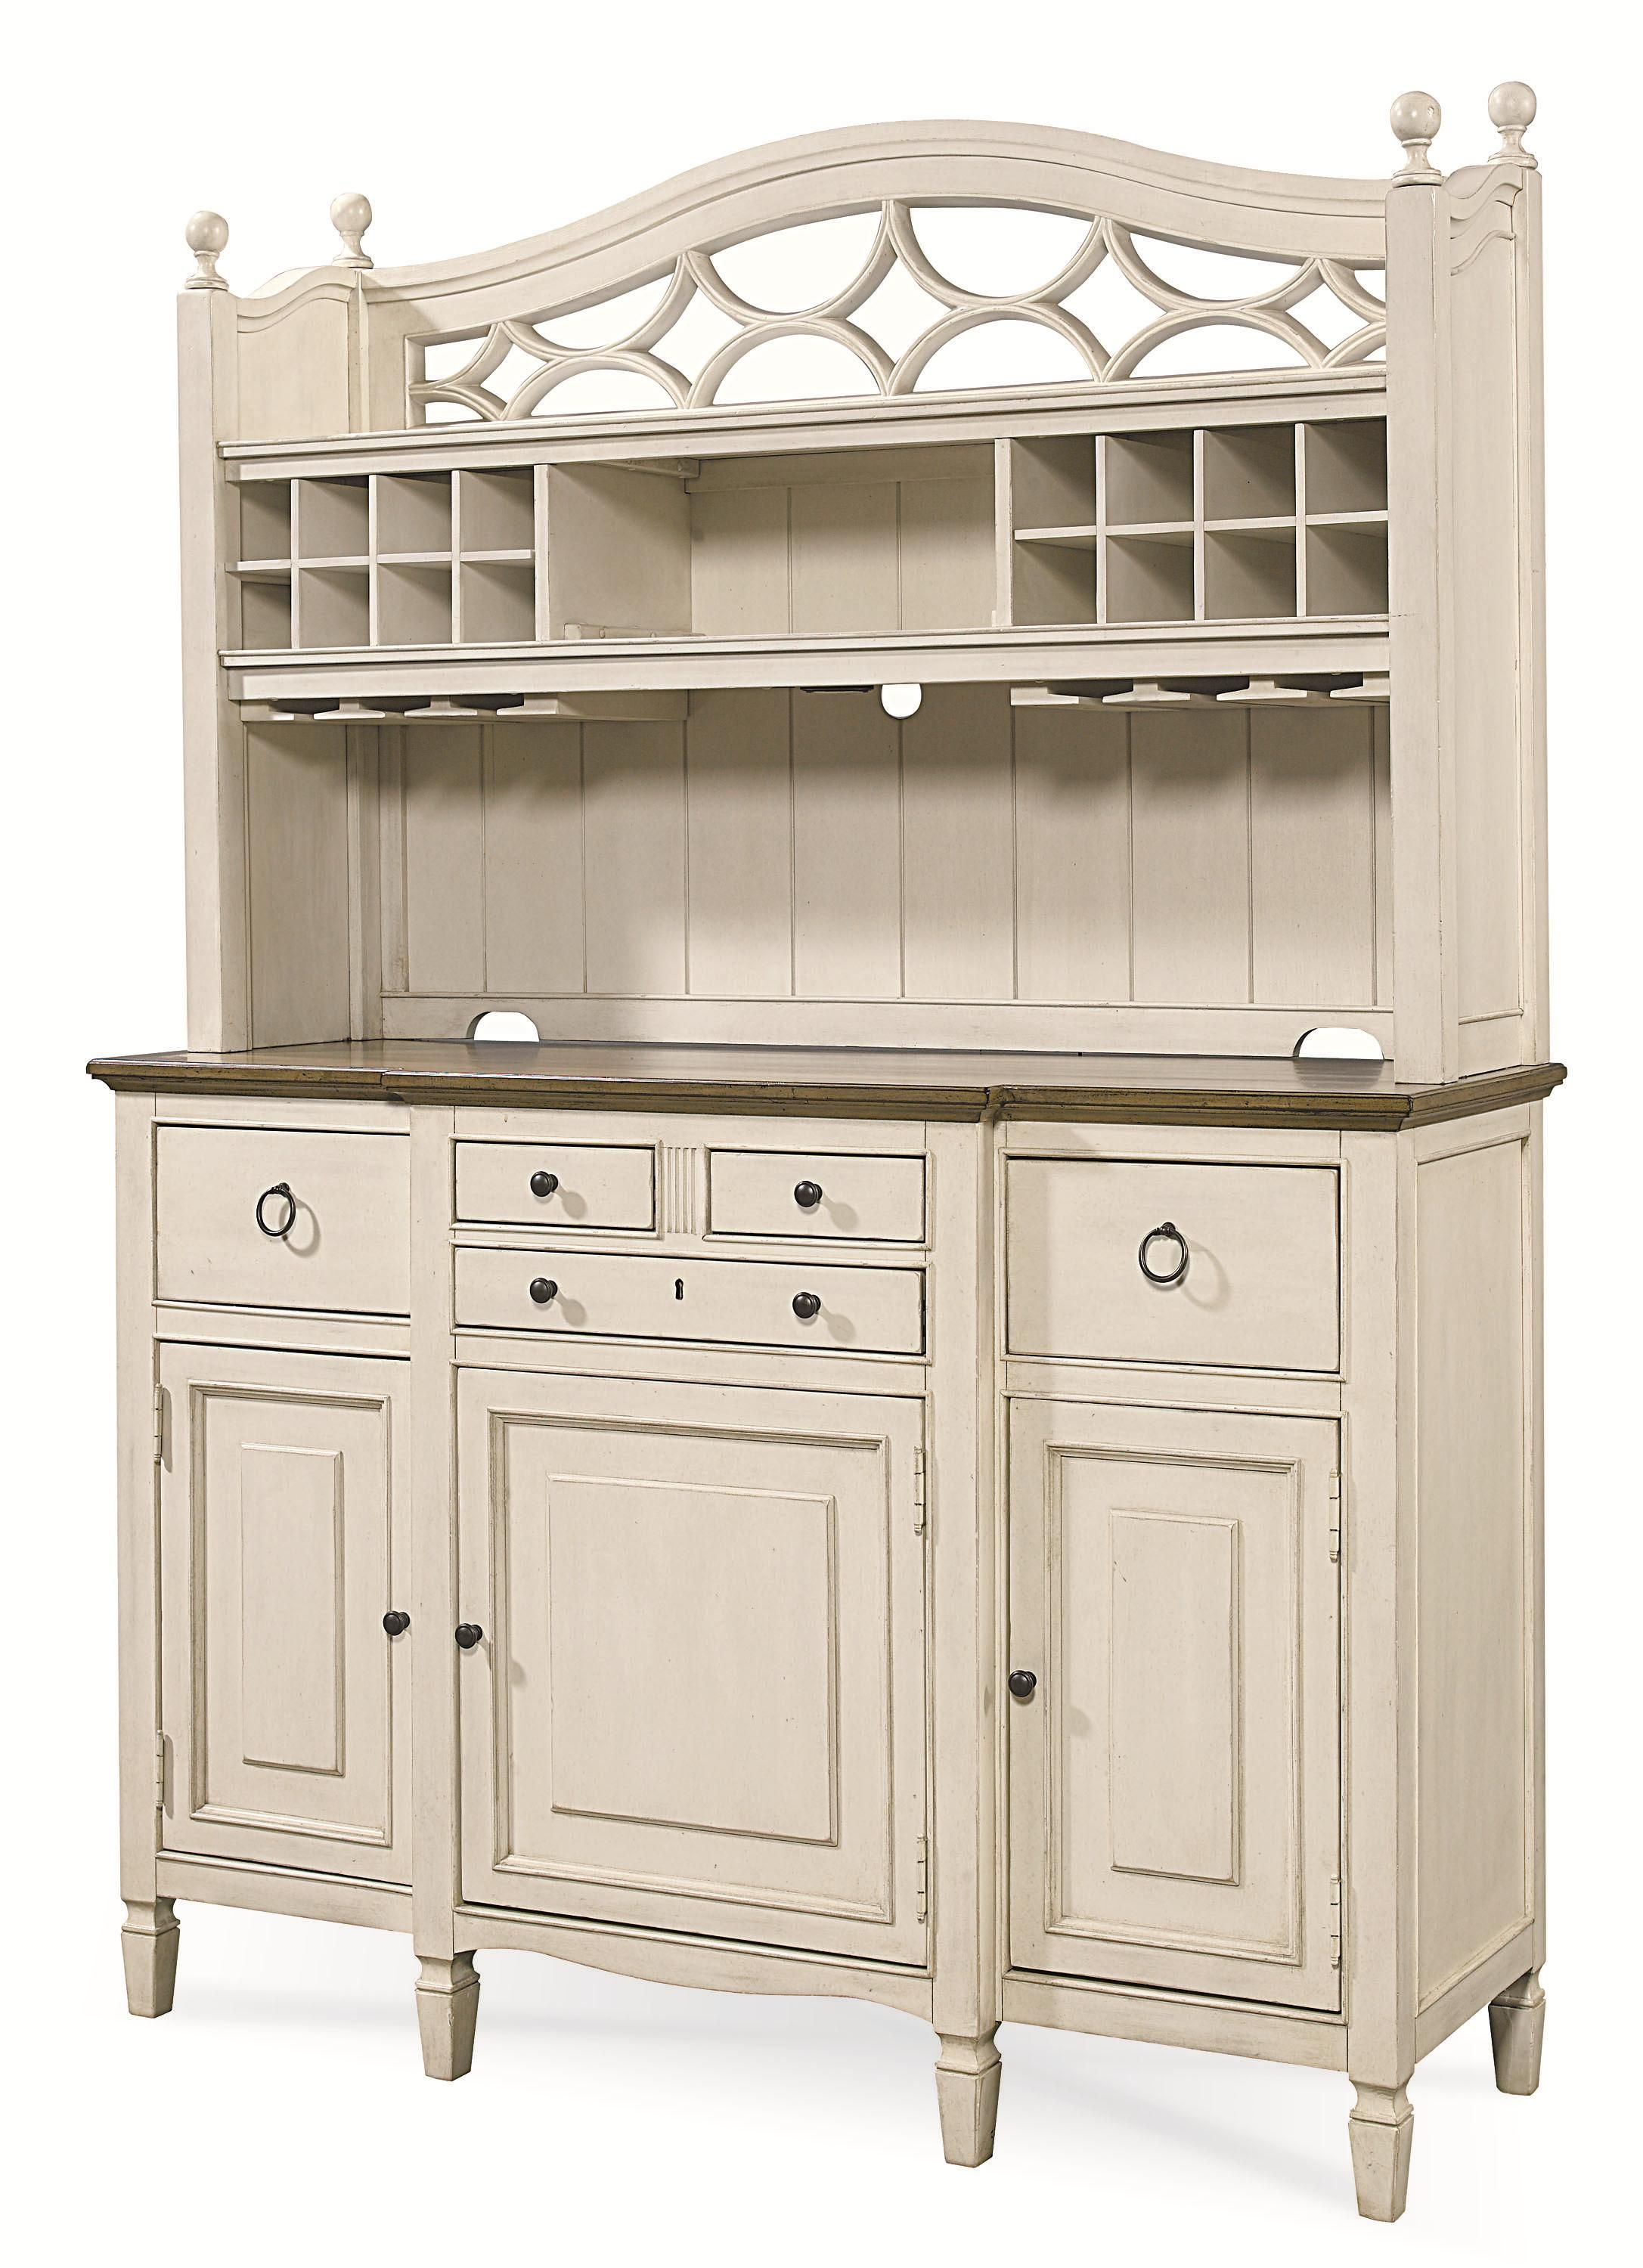 Corner Cabinet Dining Room Hutch Buffet And Bar Hutch With Wine Storage By Universal Wolf Furniture